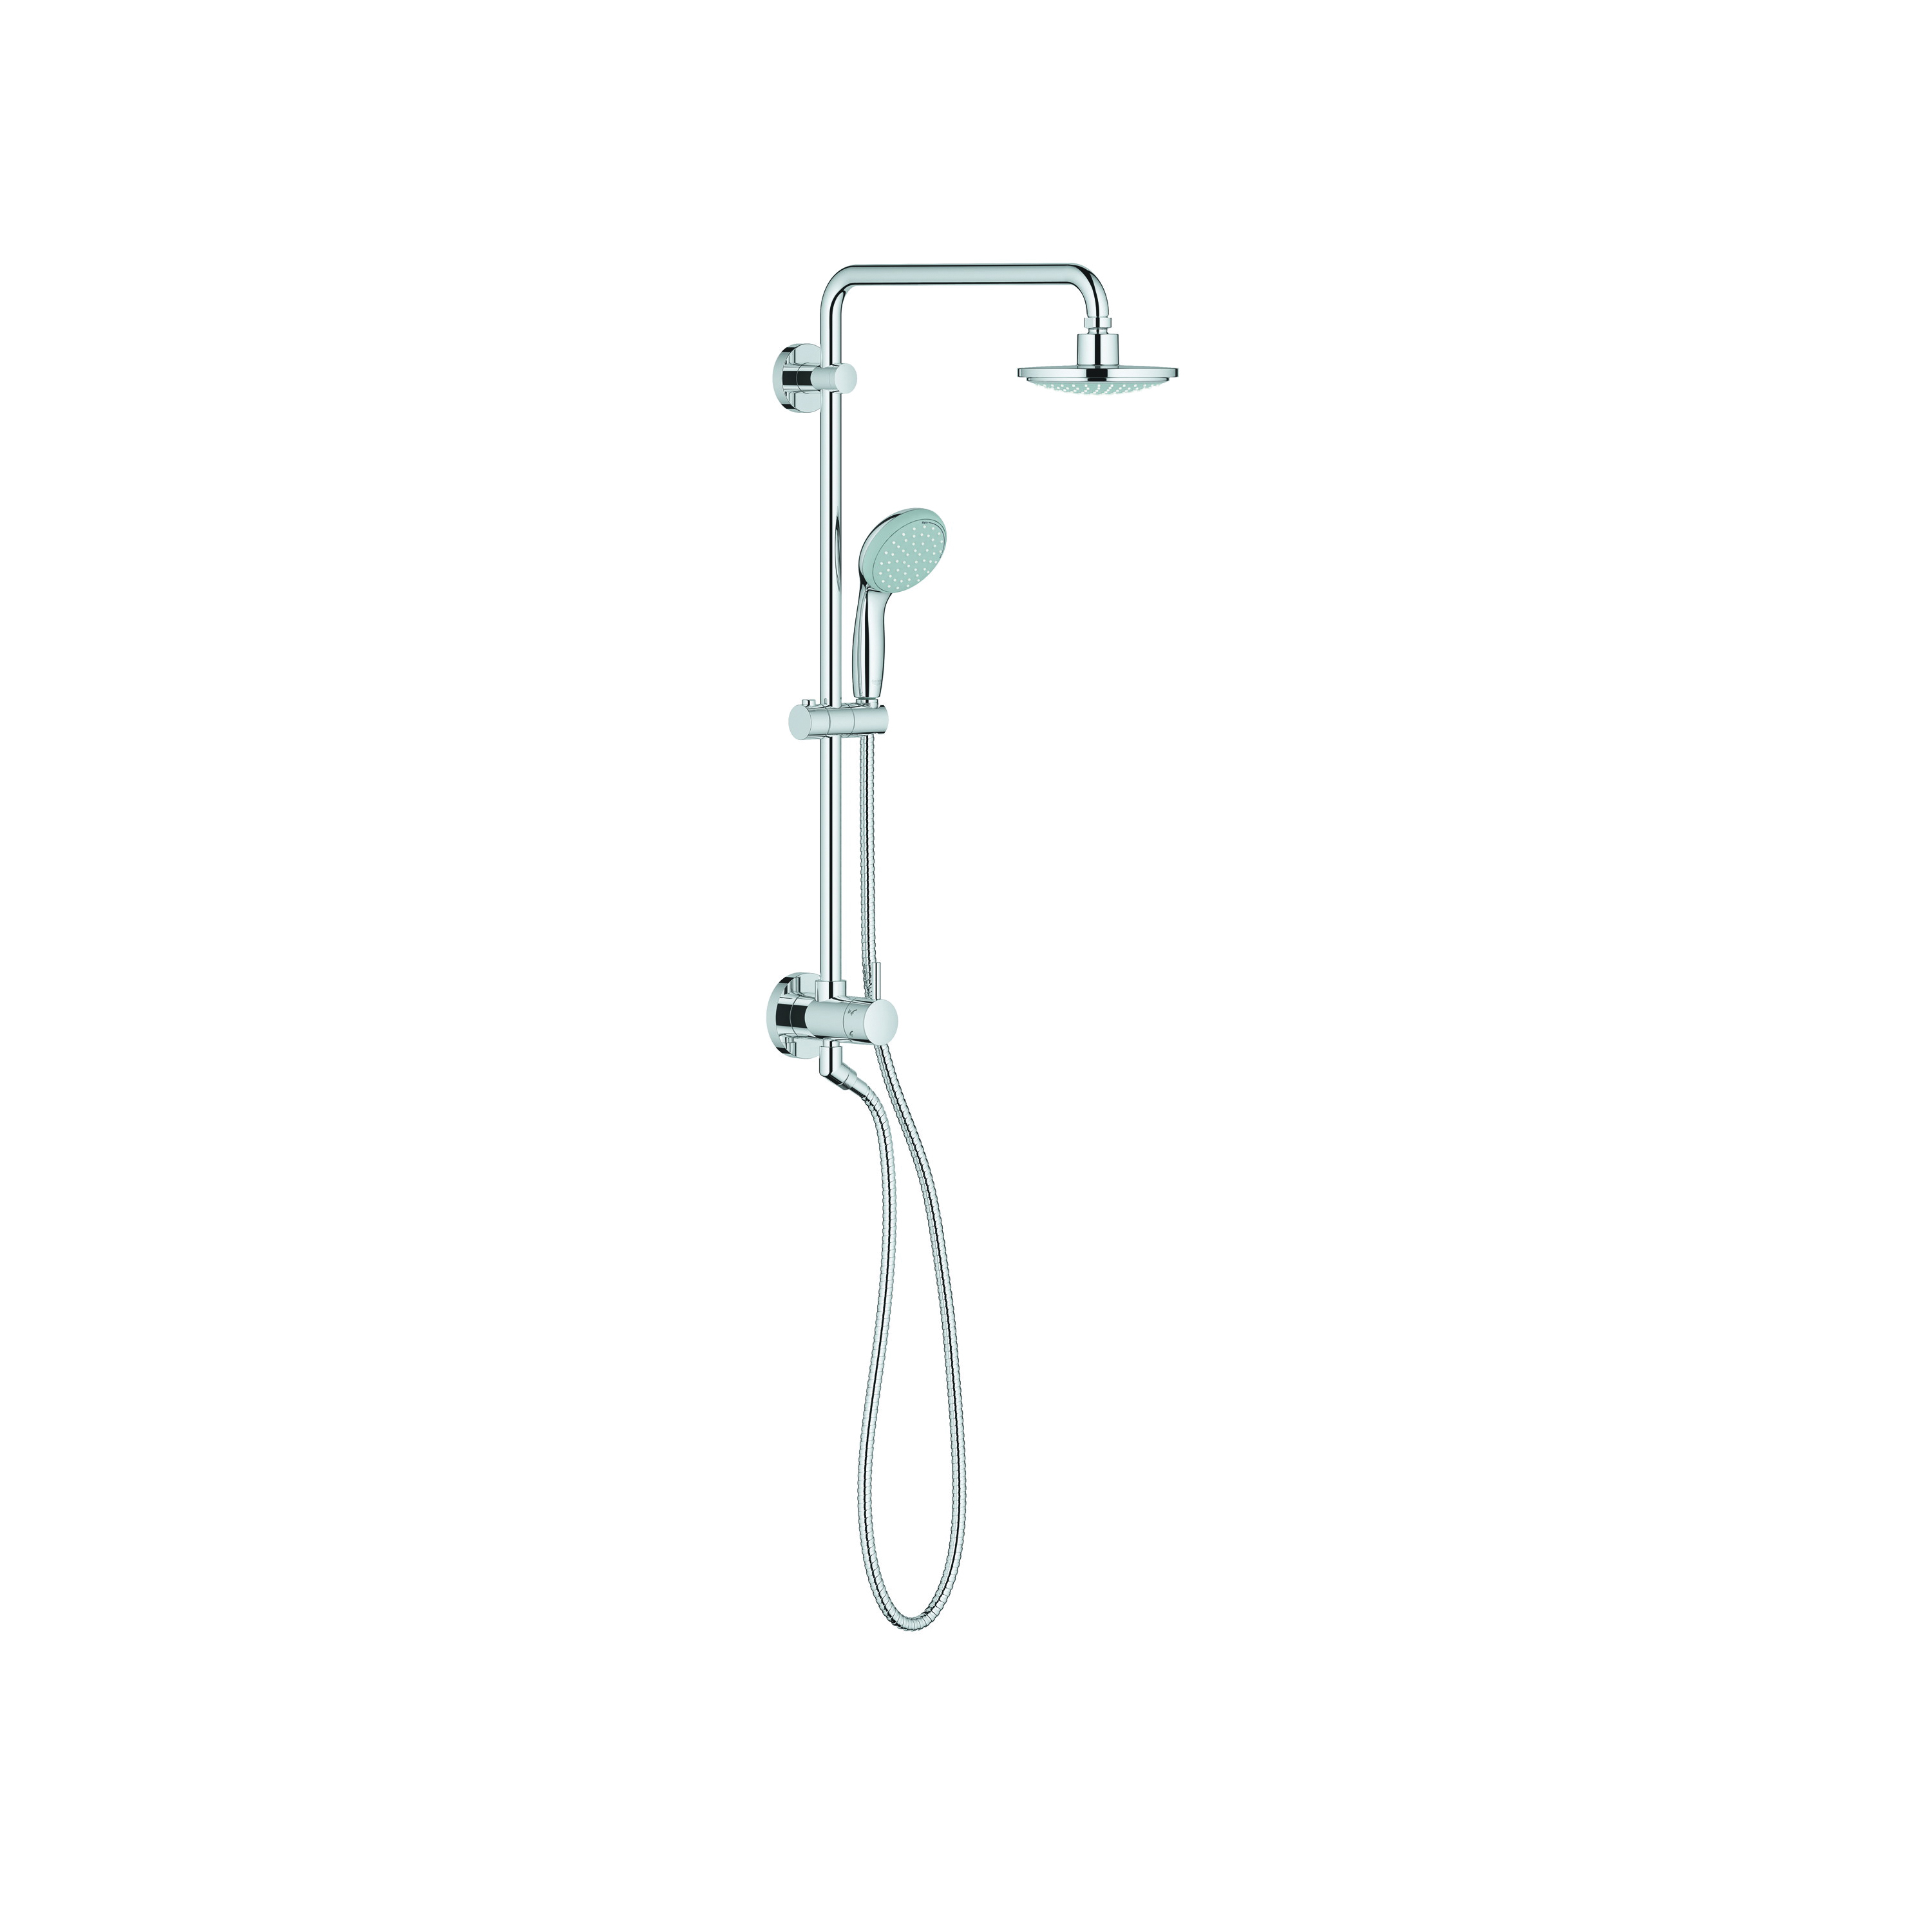 GROHE 26123000 Retro-fit 160 Shower System, 6-5/16 in Dia Head, 2 Shower Head, 2 gpm, 1/2 in FNPT, Slide Bar: No, Chrome Plated, Import